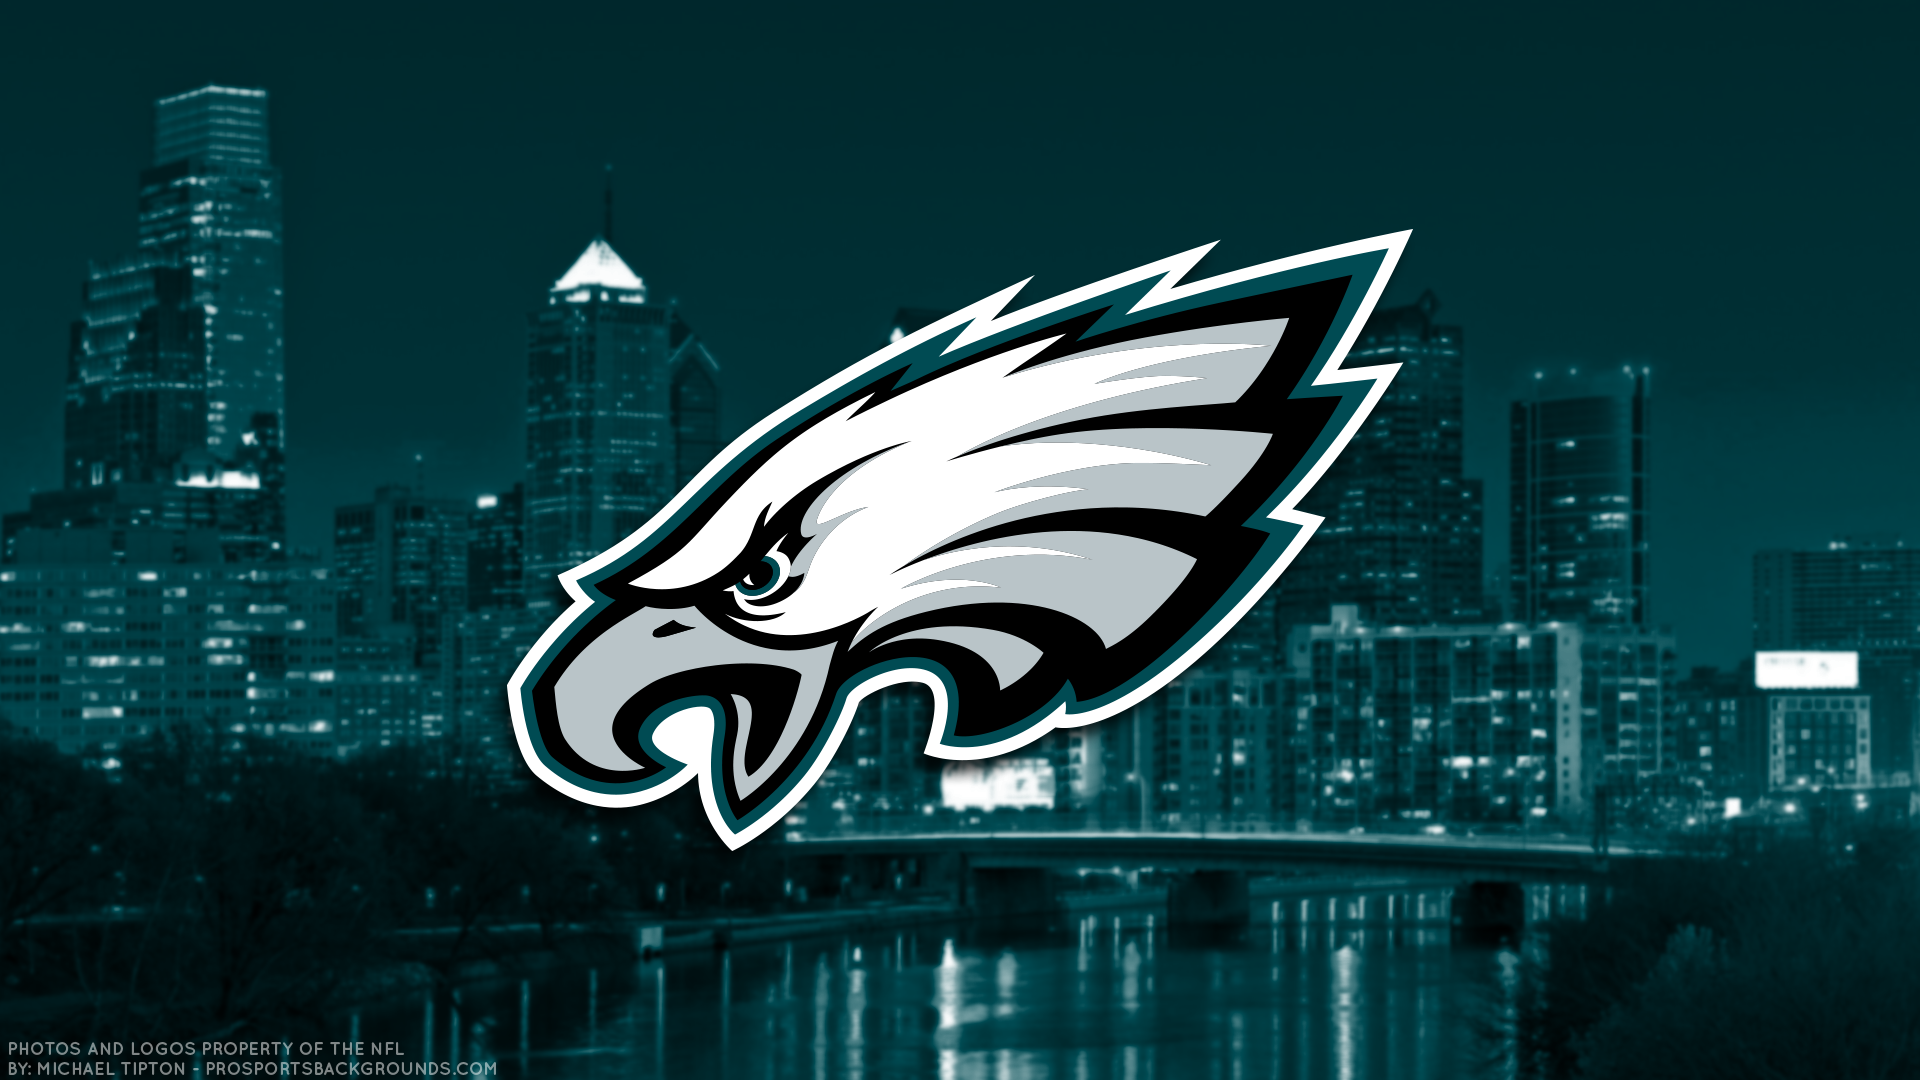 2019 Philadelphia Eagles Wallpapers (With images) Nfl